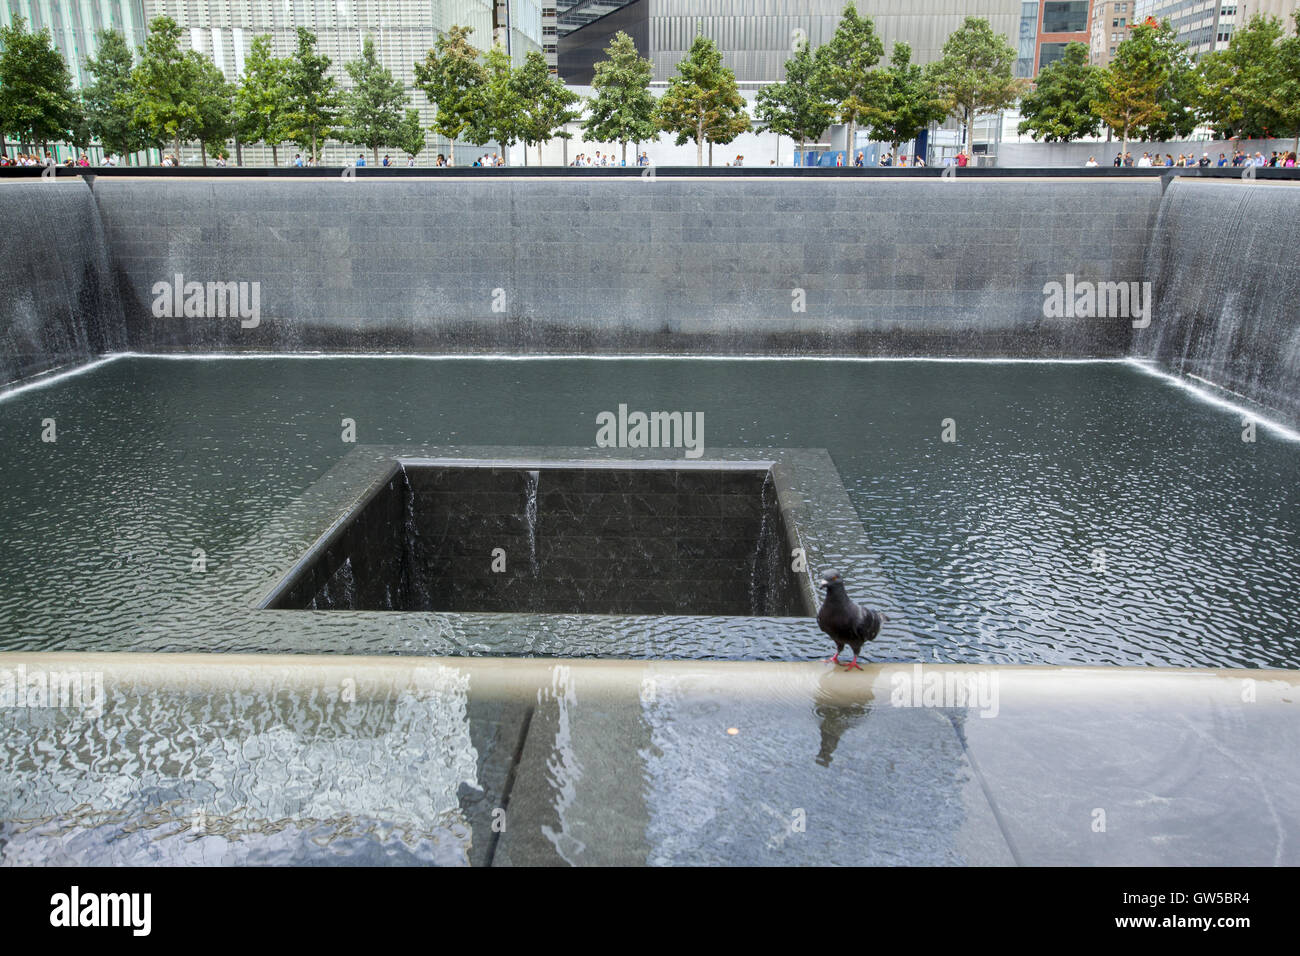 North reflecting pool at the 9/11 Memorial site in Manhattan. Stock Photo